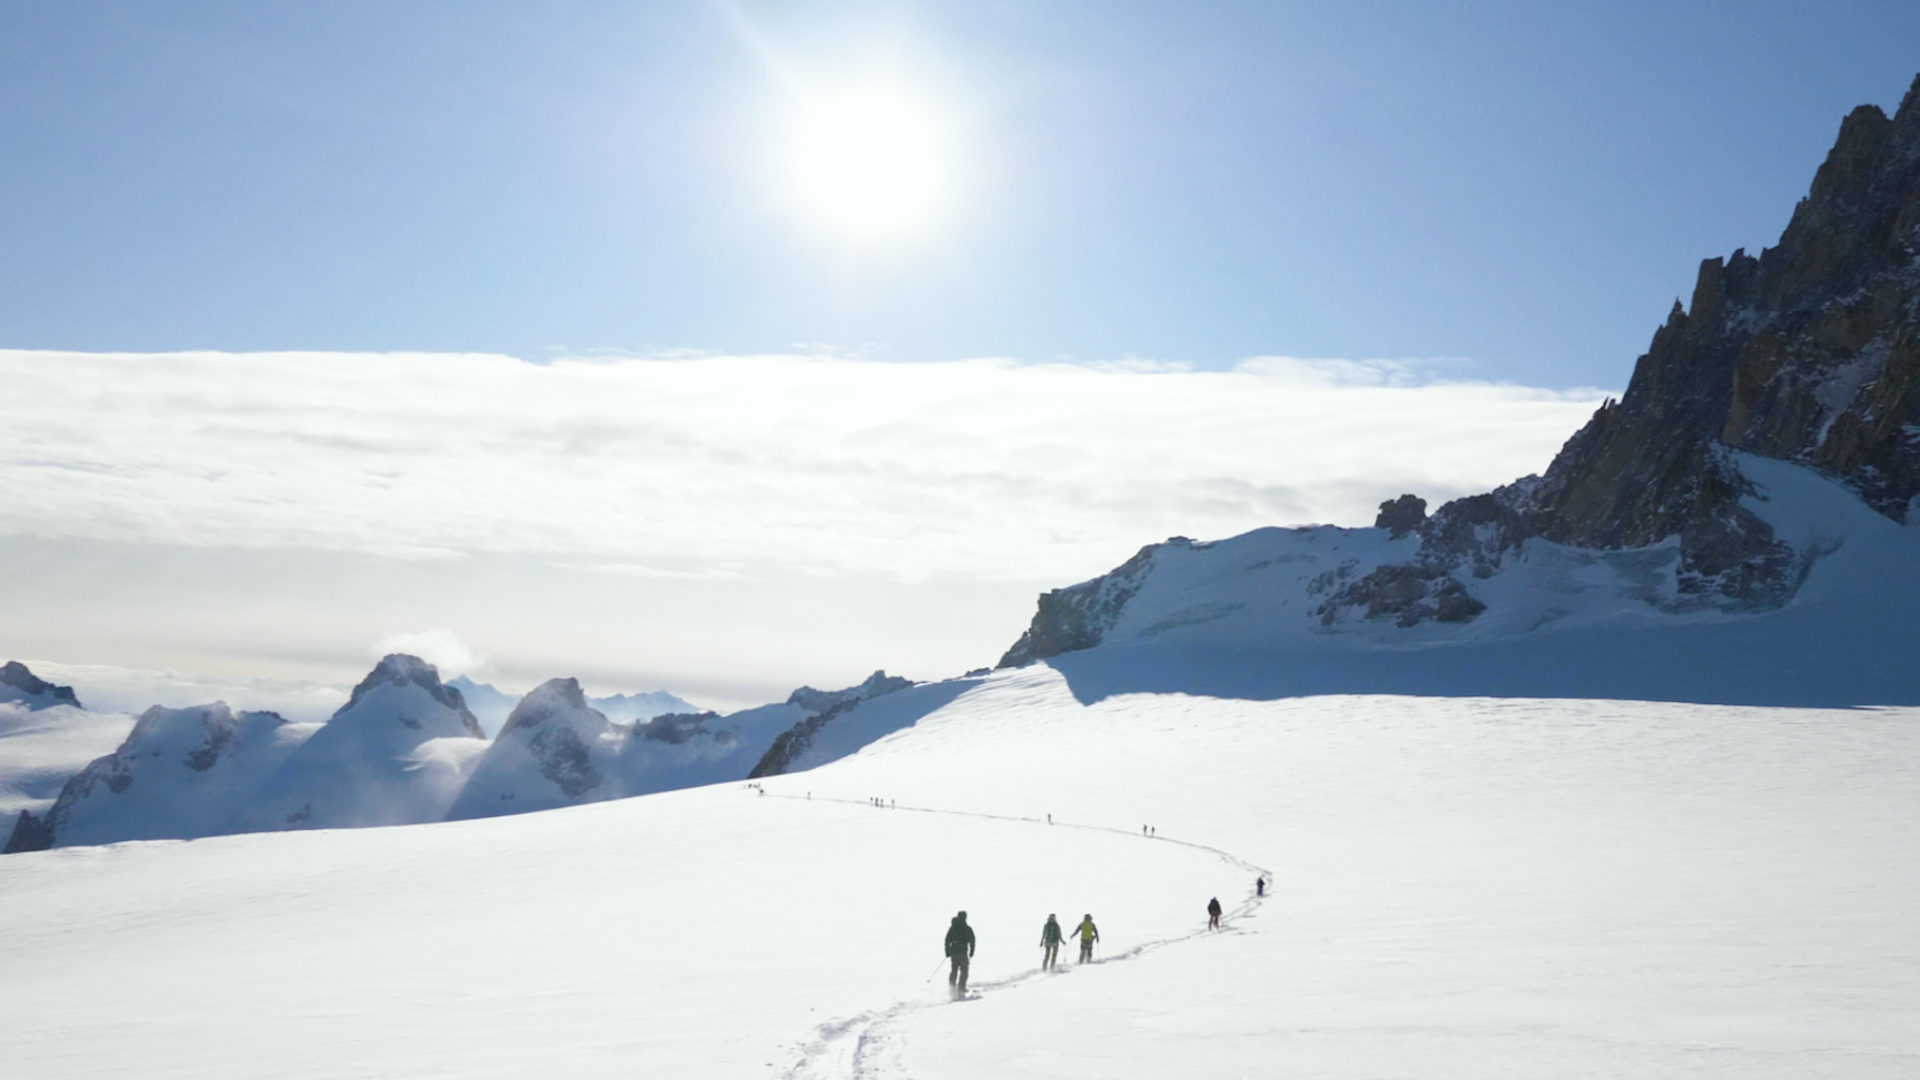 Skiers head towards the entrance of the Voie Normale route of the Vallee Blanche in Chamonix